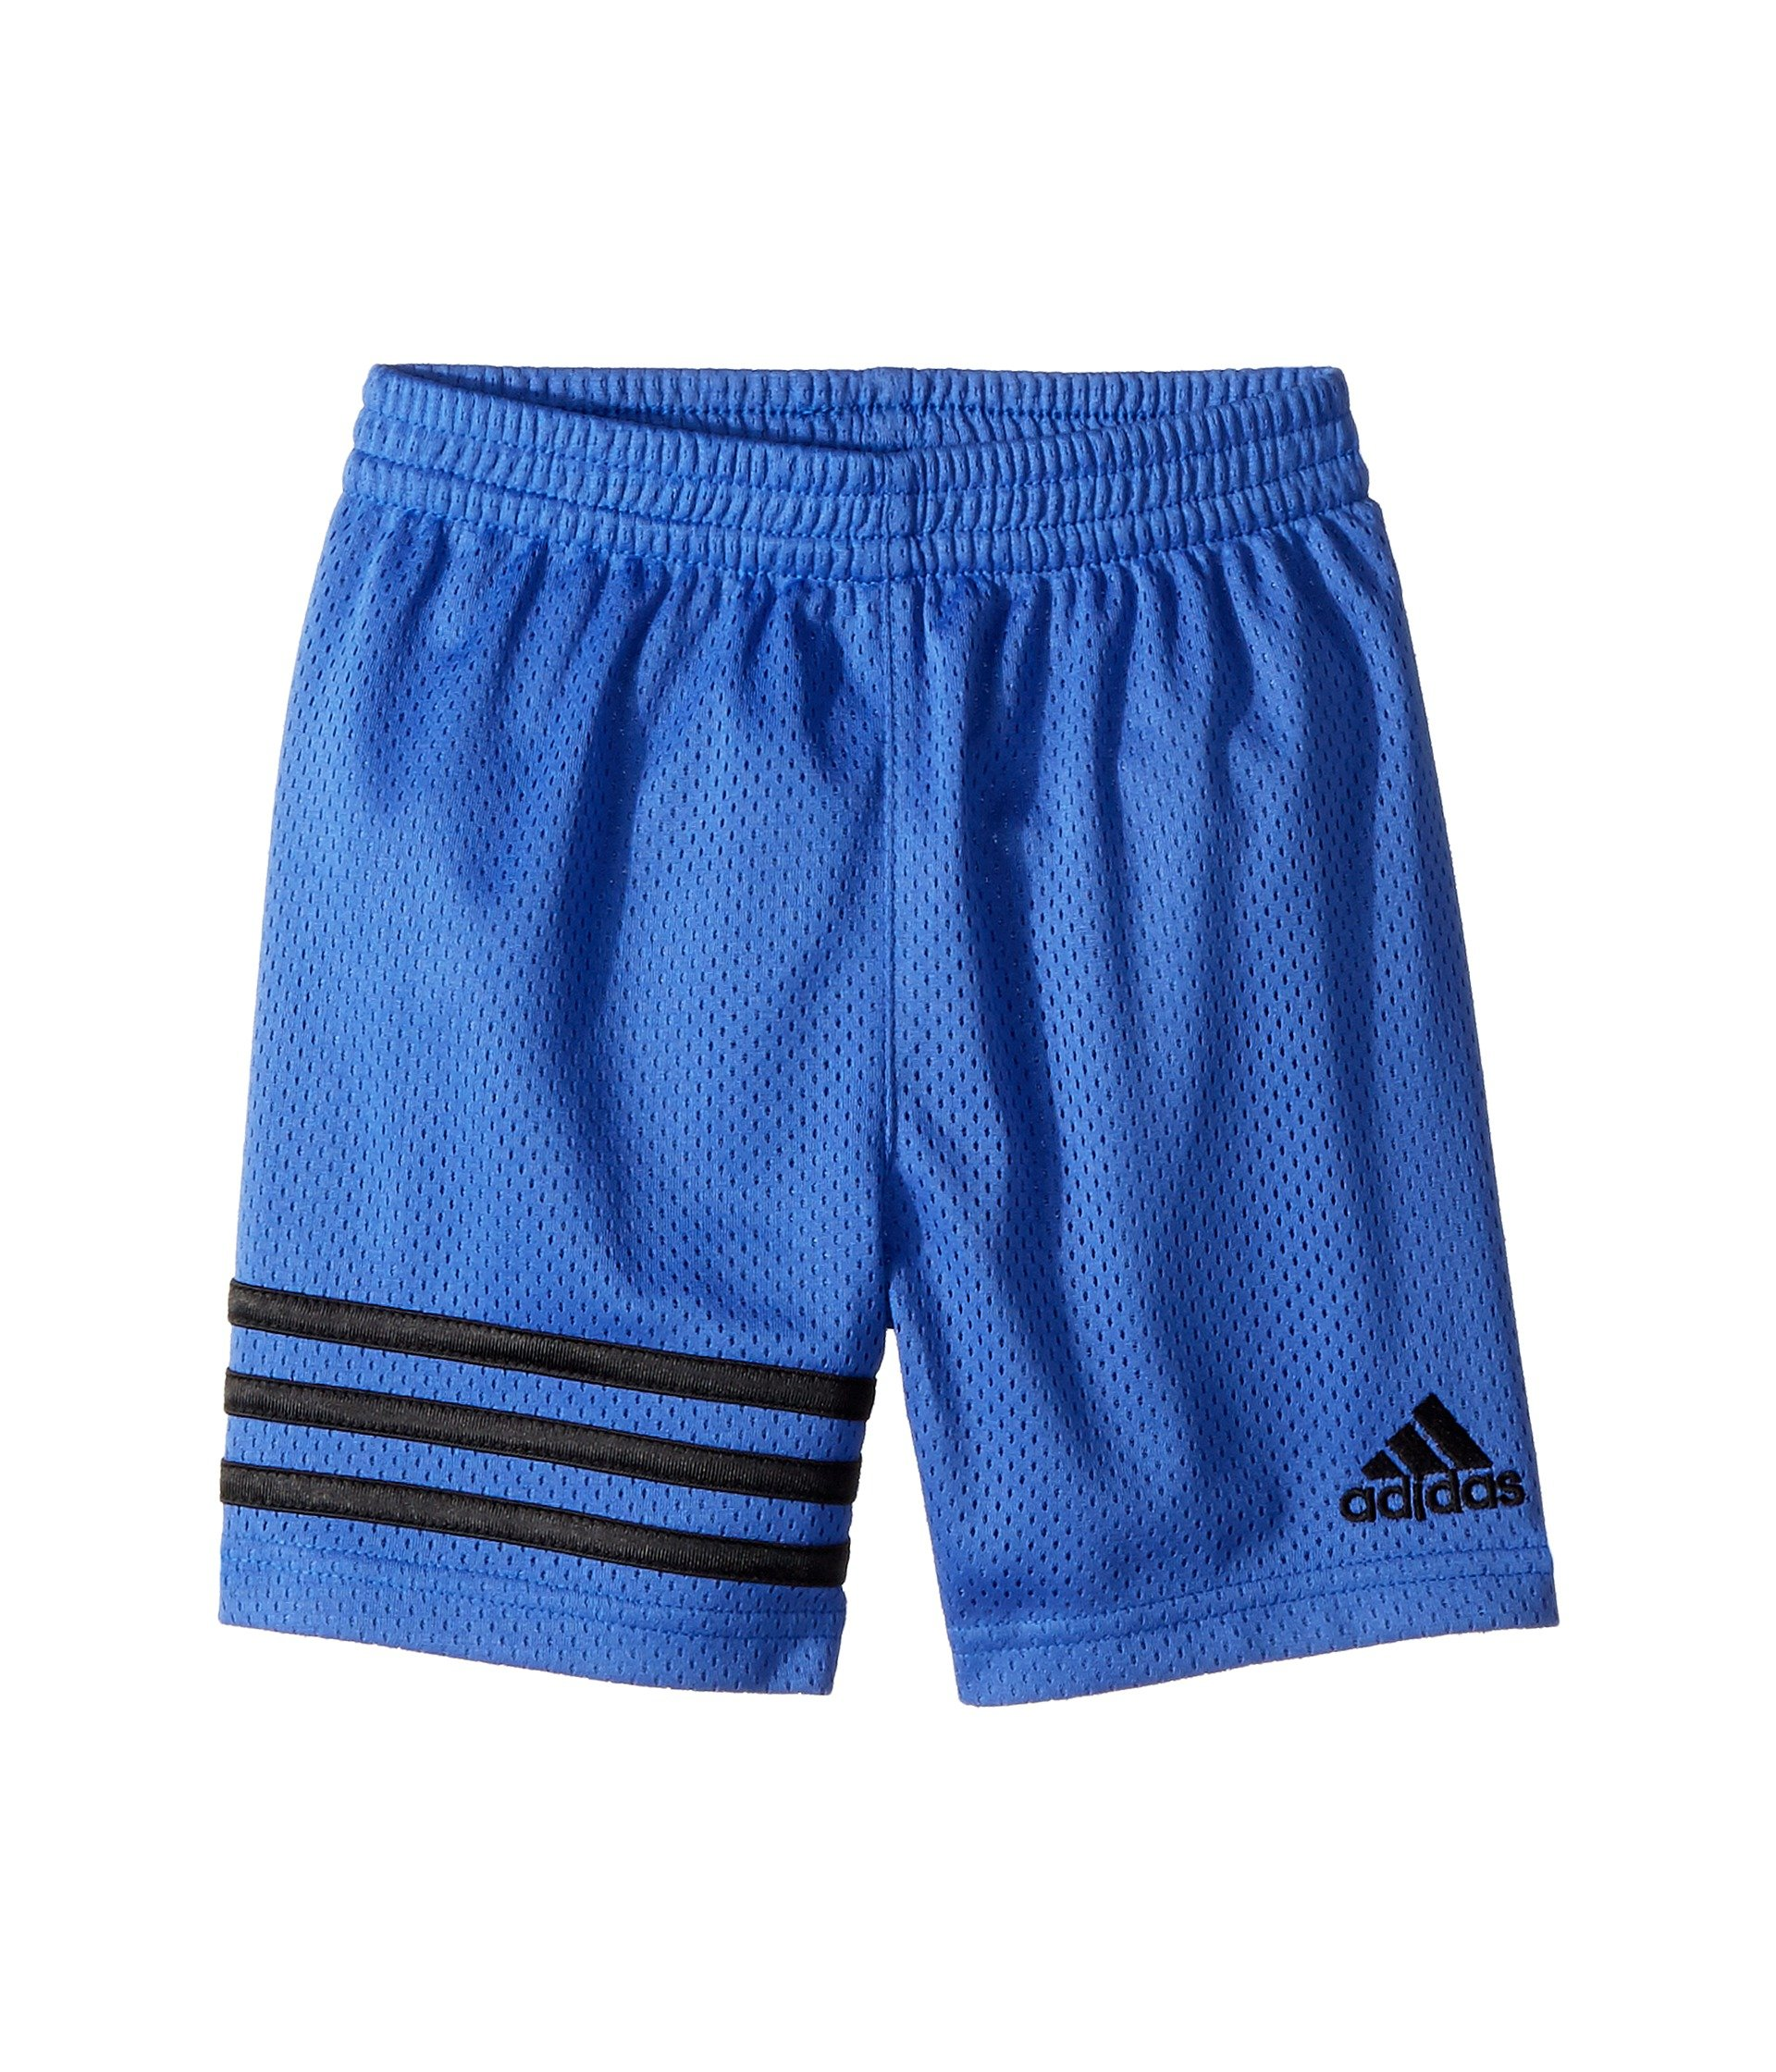 8278e8996572 adidas Kids Baby Boy's Defender Shorts (Toddler/Little Kids) Royal 5